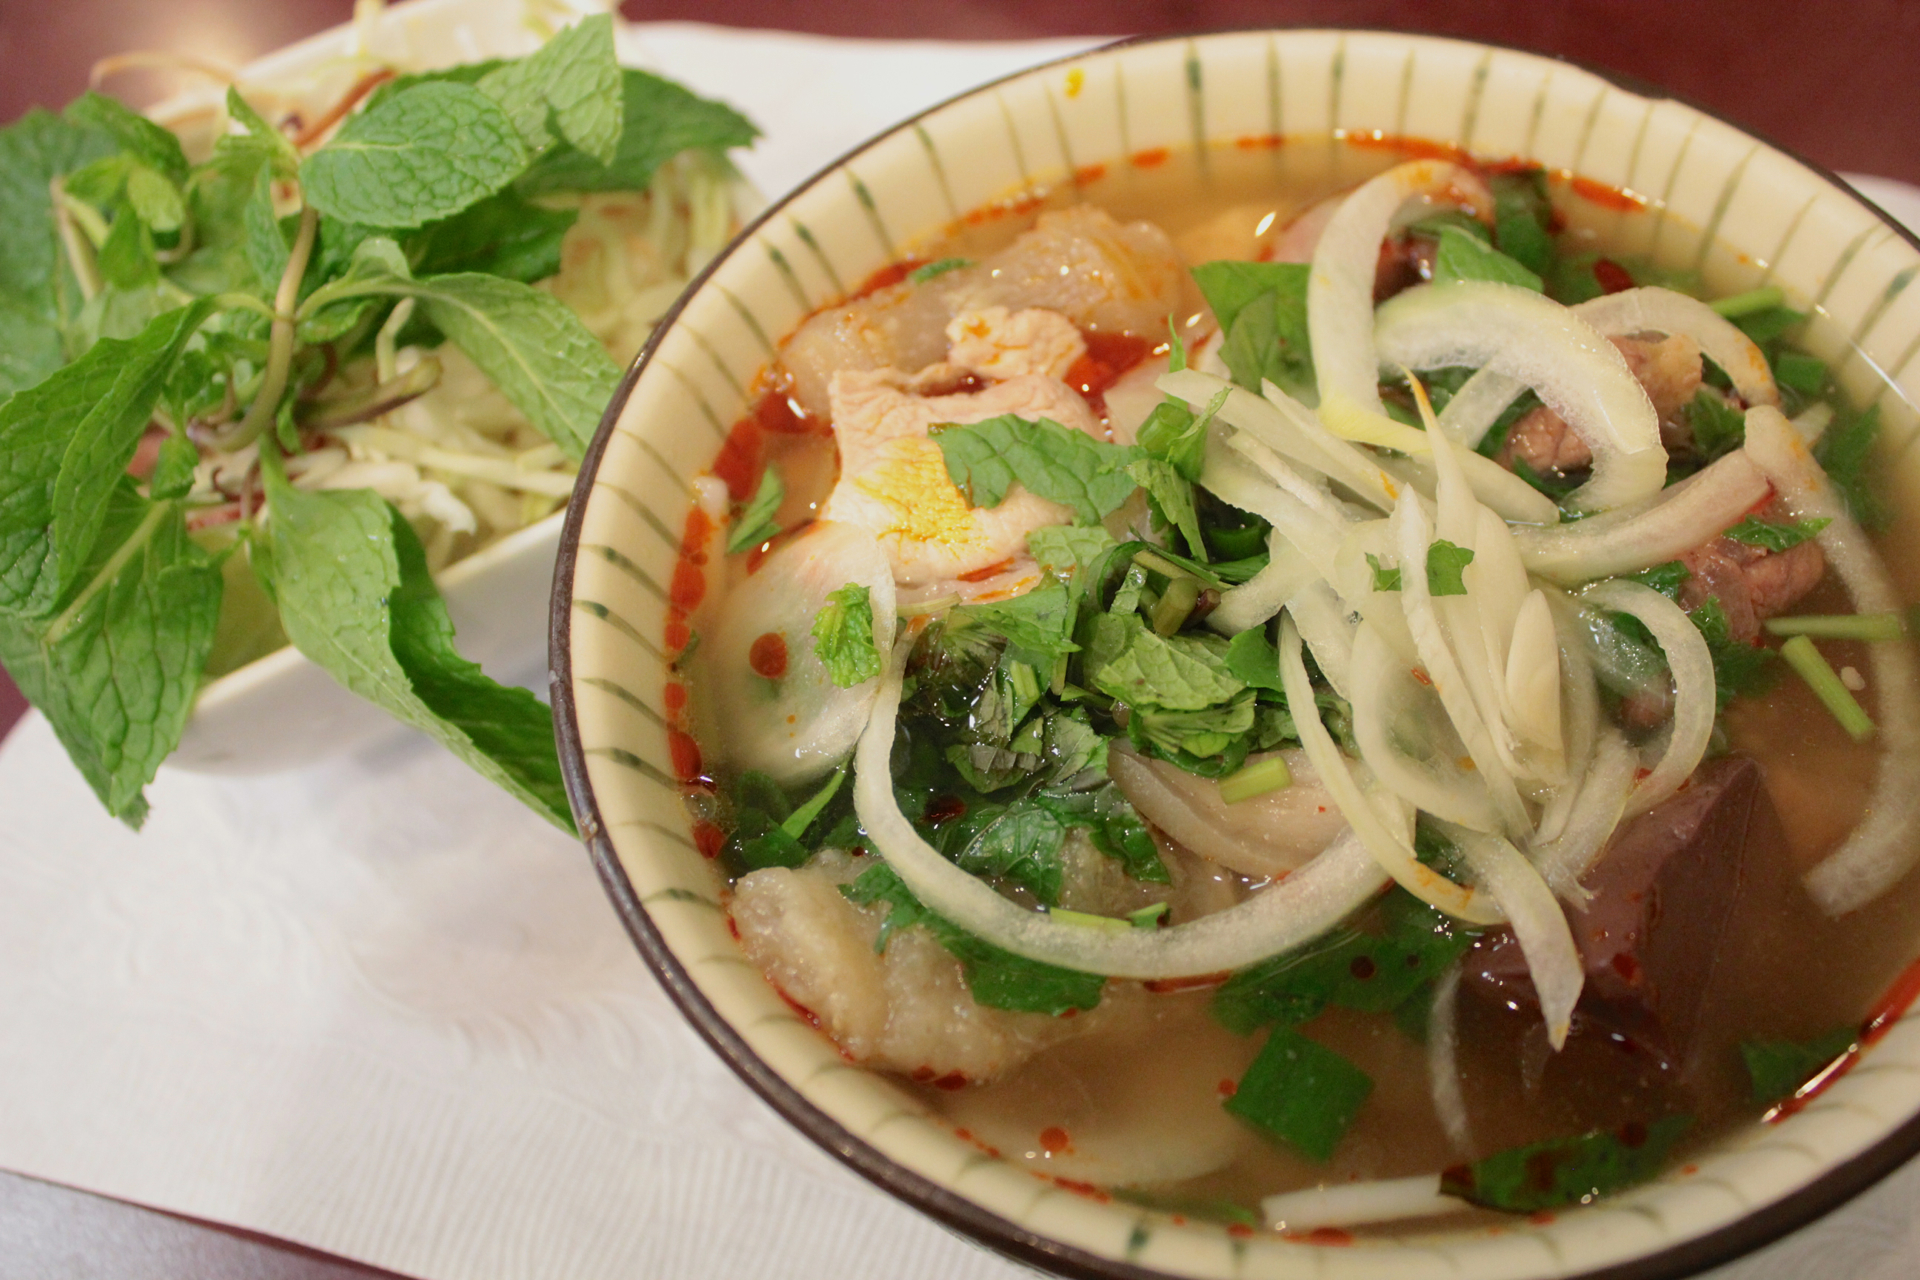 The spicy beef noodle pho with ox pizzle and pork blood.